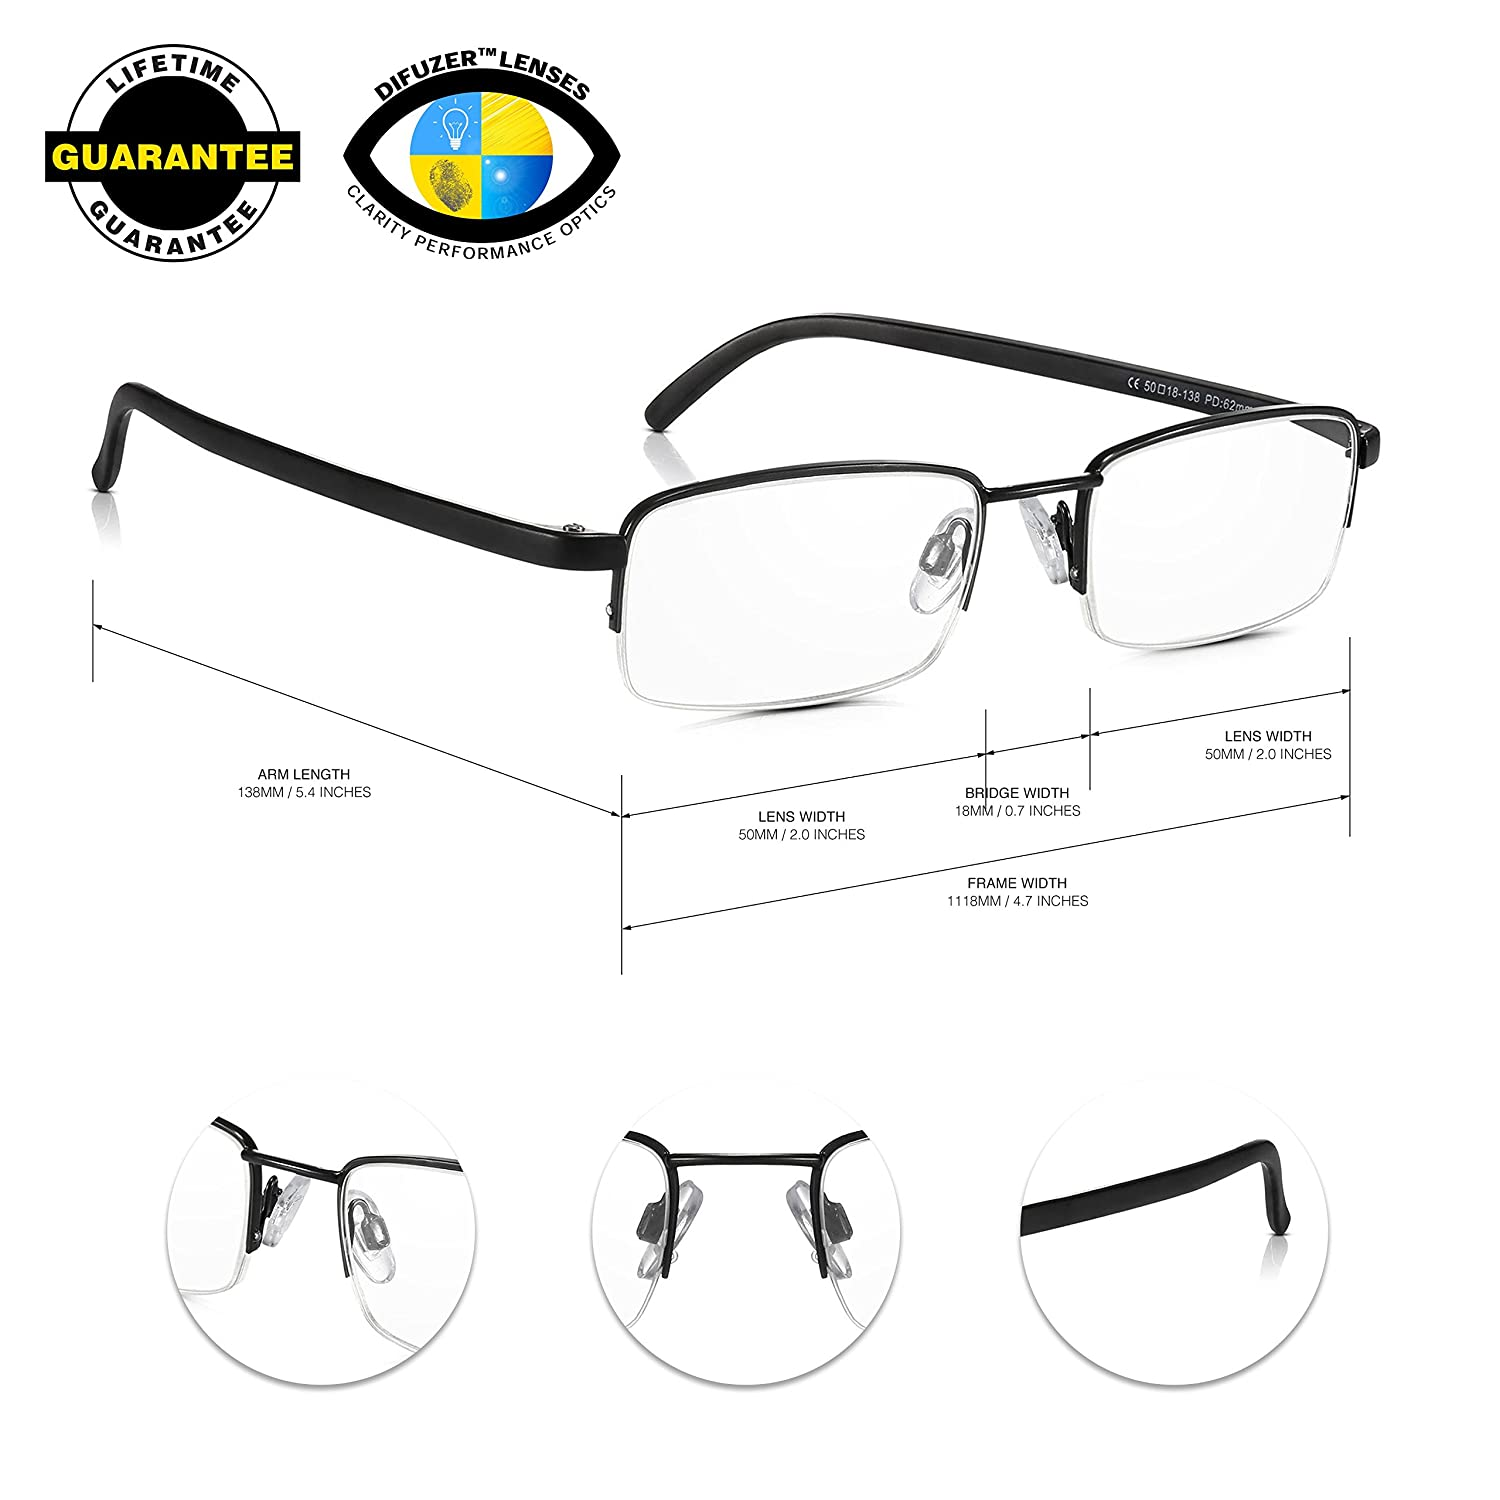 742c489451 Read Optics 5 Pack Half Frame Reading Glasses  Vintage Black Metal  Semi-Rimless Ready Readers +1.5 to +2.5. Optical Quality Rectangular Clear  Lens ...